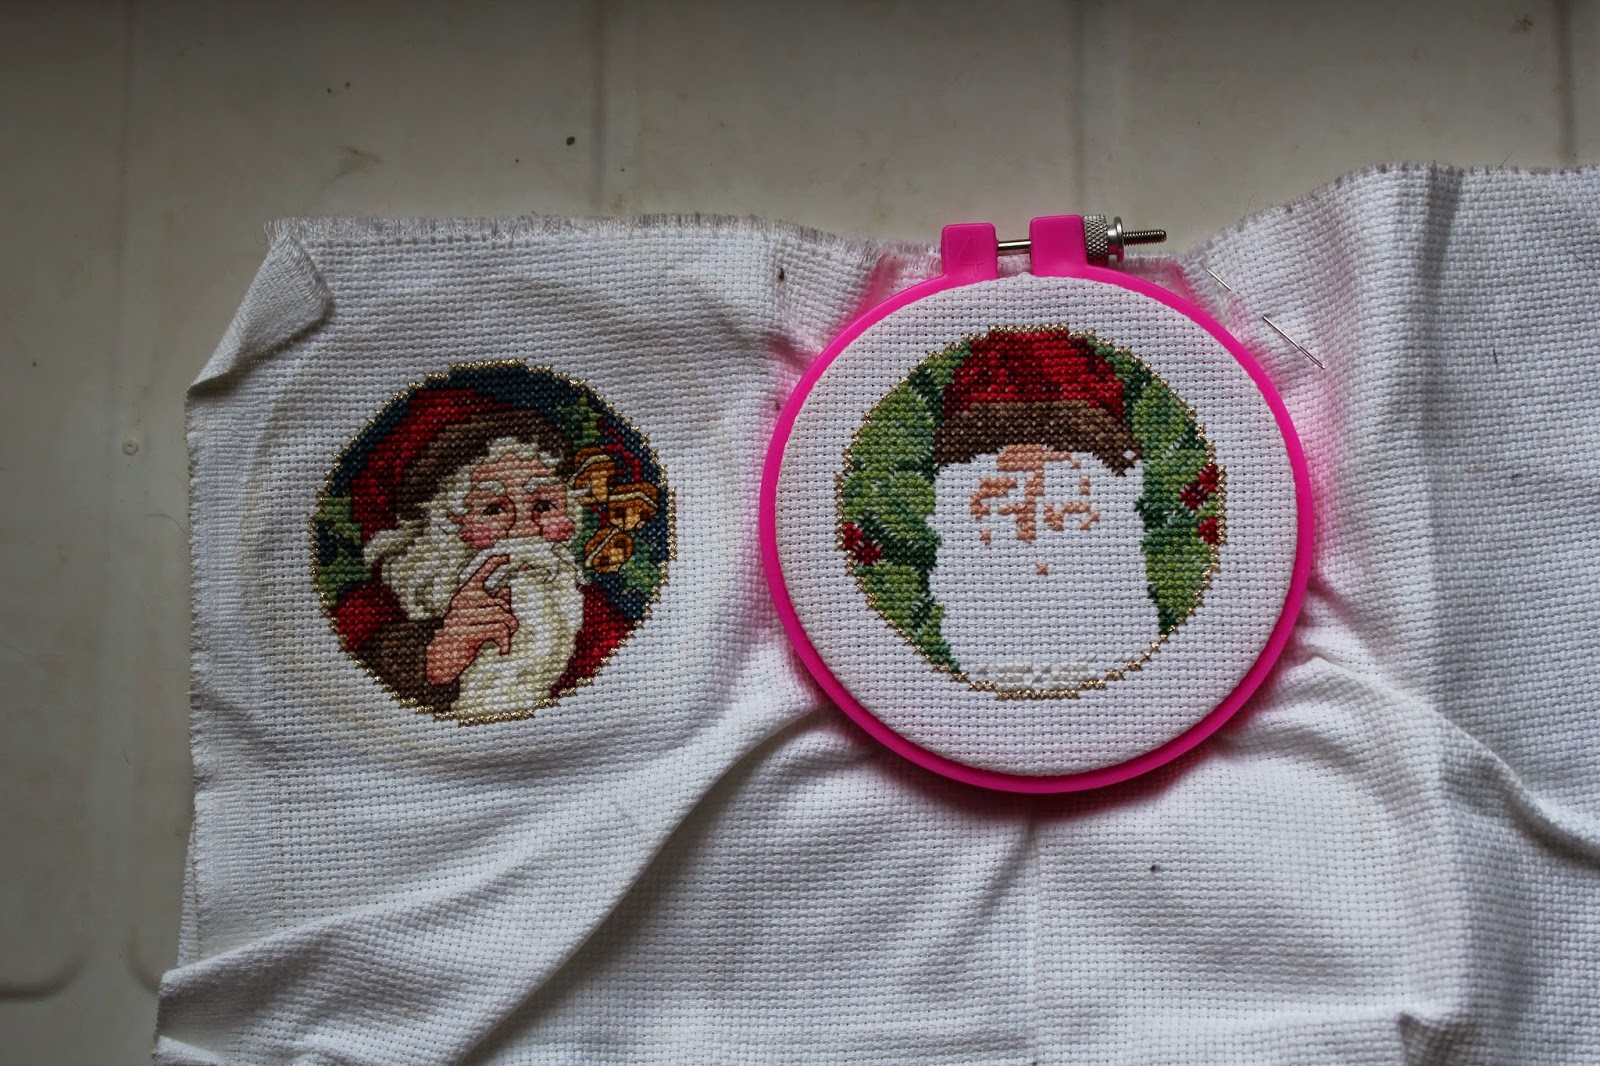 Half-finished Santa ornaments